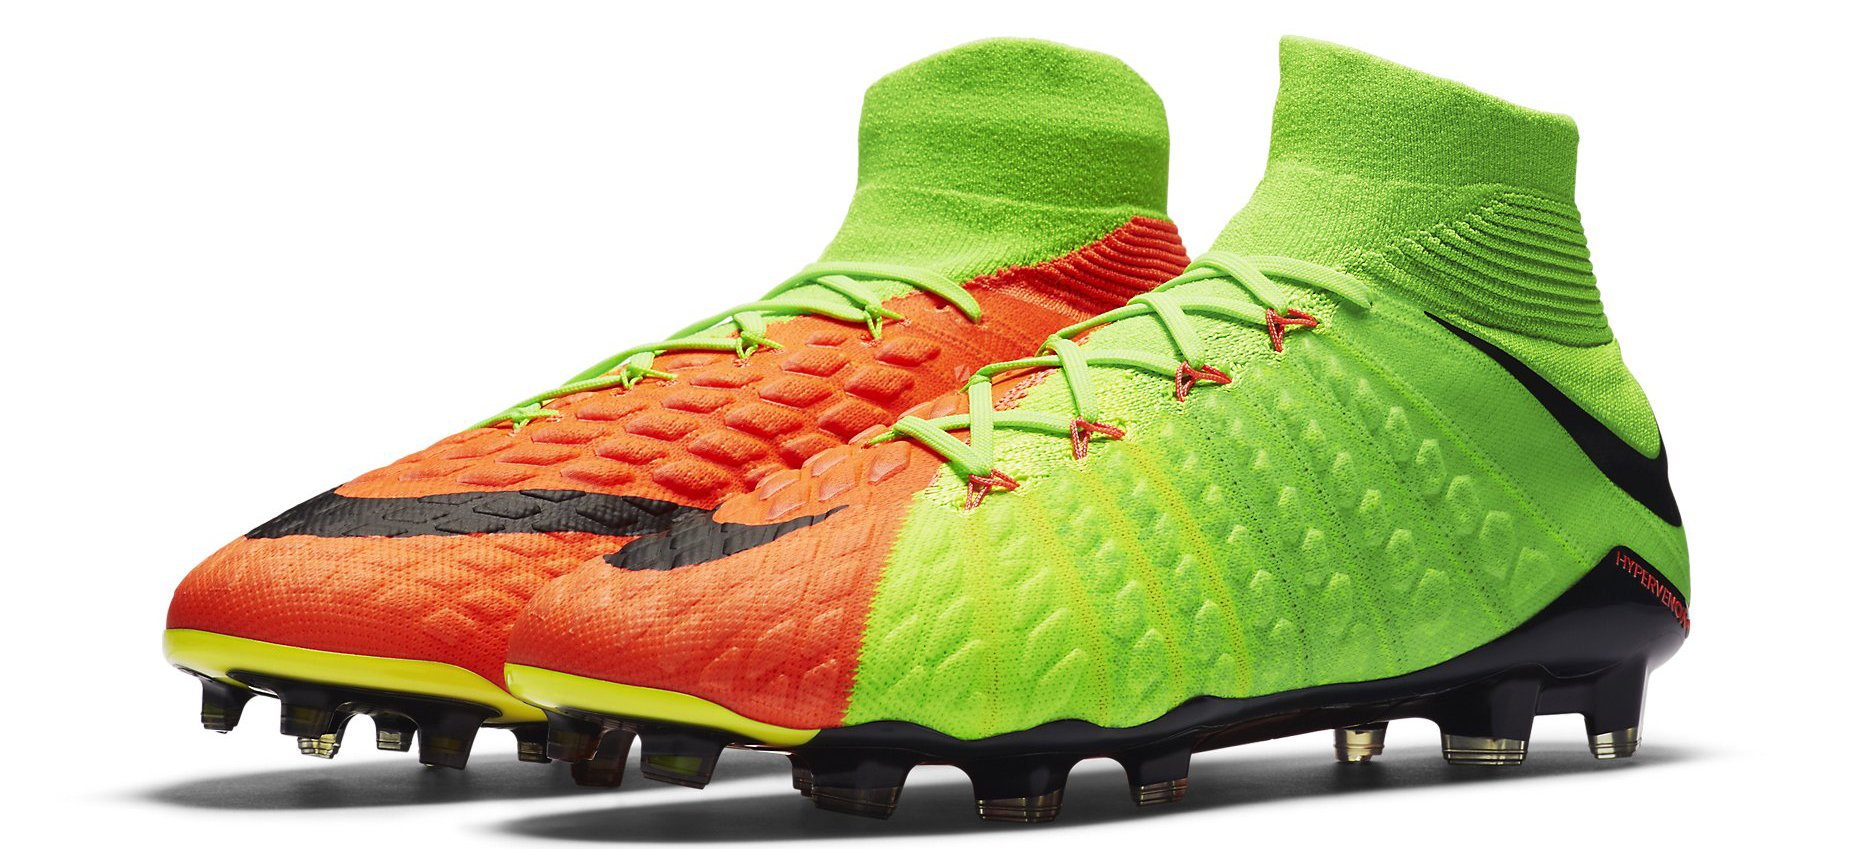 Here are All Nike Hypervenom Phantom III That Will Be Released in the Next Three Months